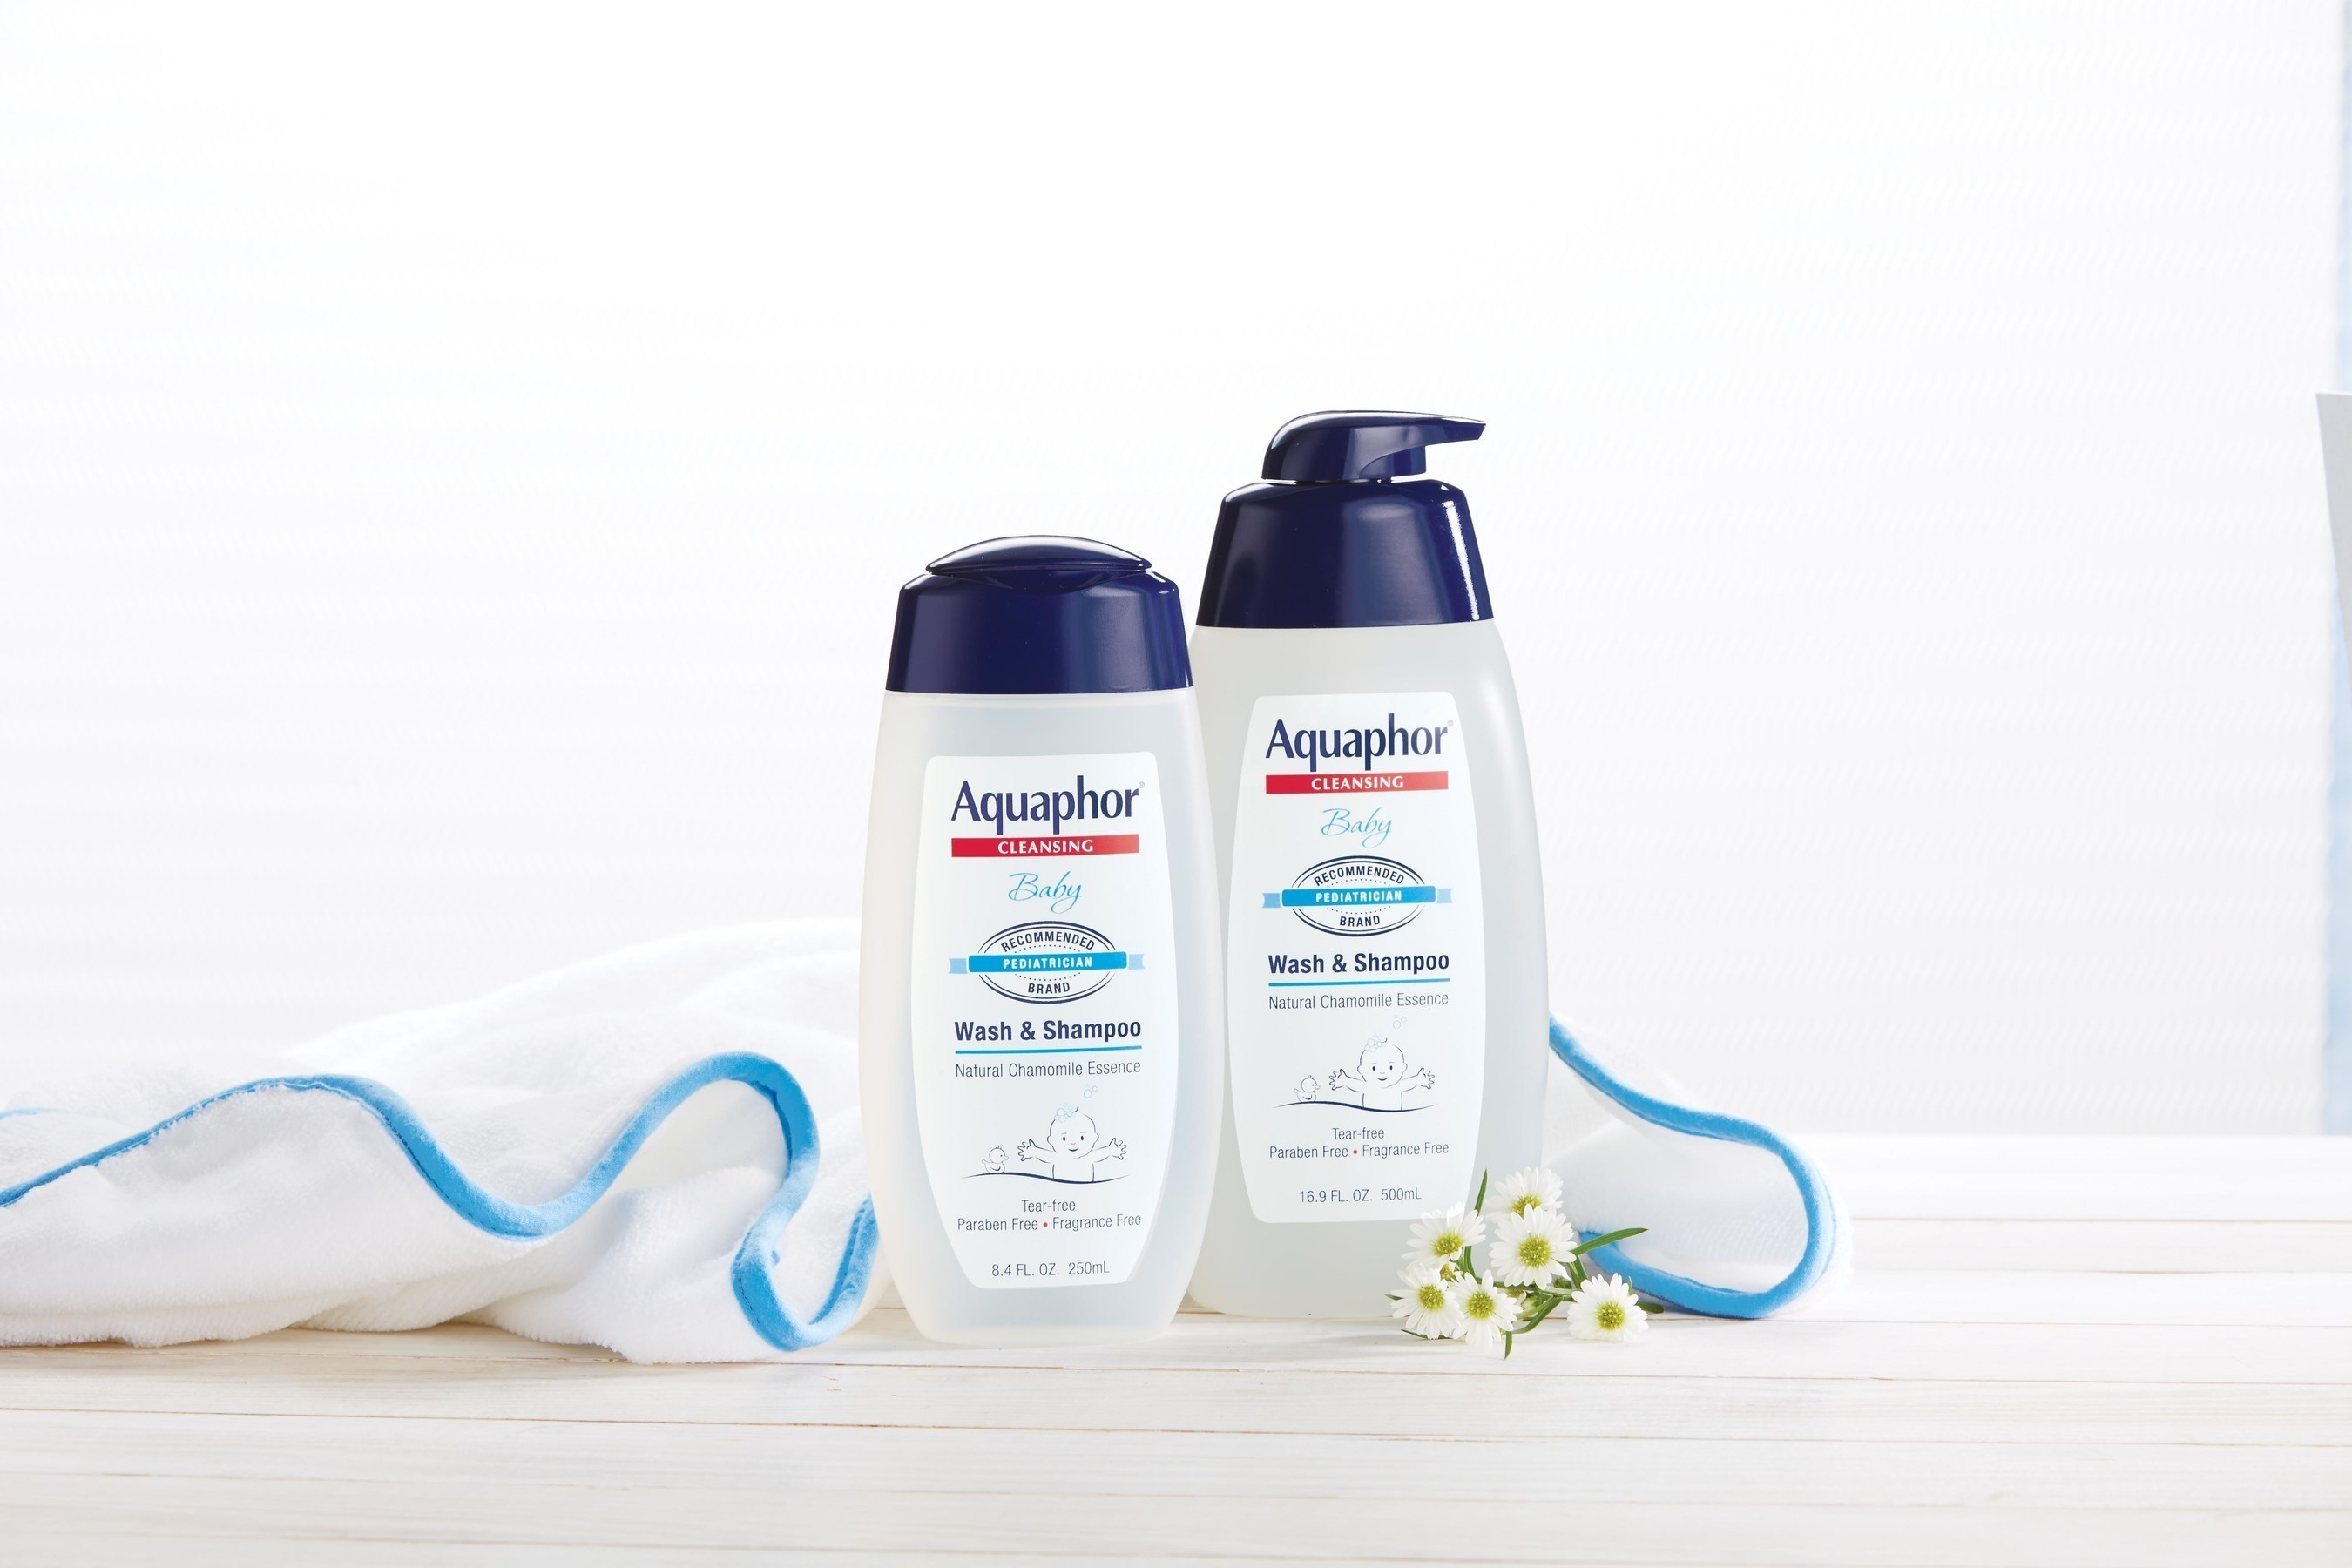 Pediatrician Recommended Aquaphor Baby Launches New Packaging For Their Wash Shampoo To Make Bath Time Even More Convenient